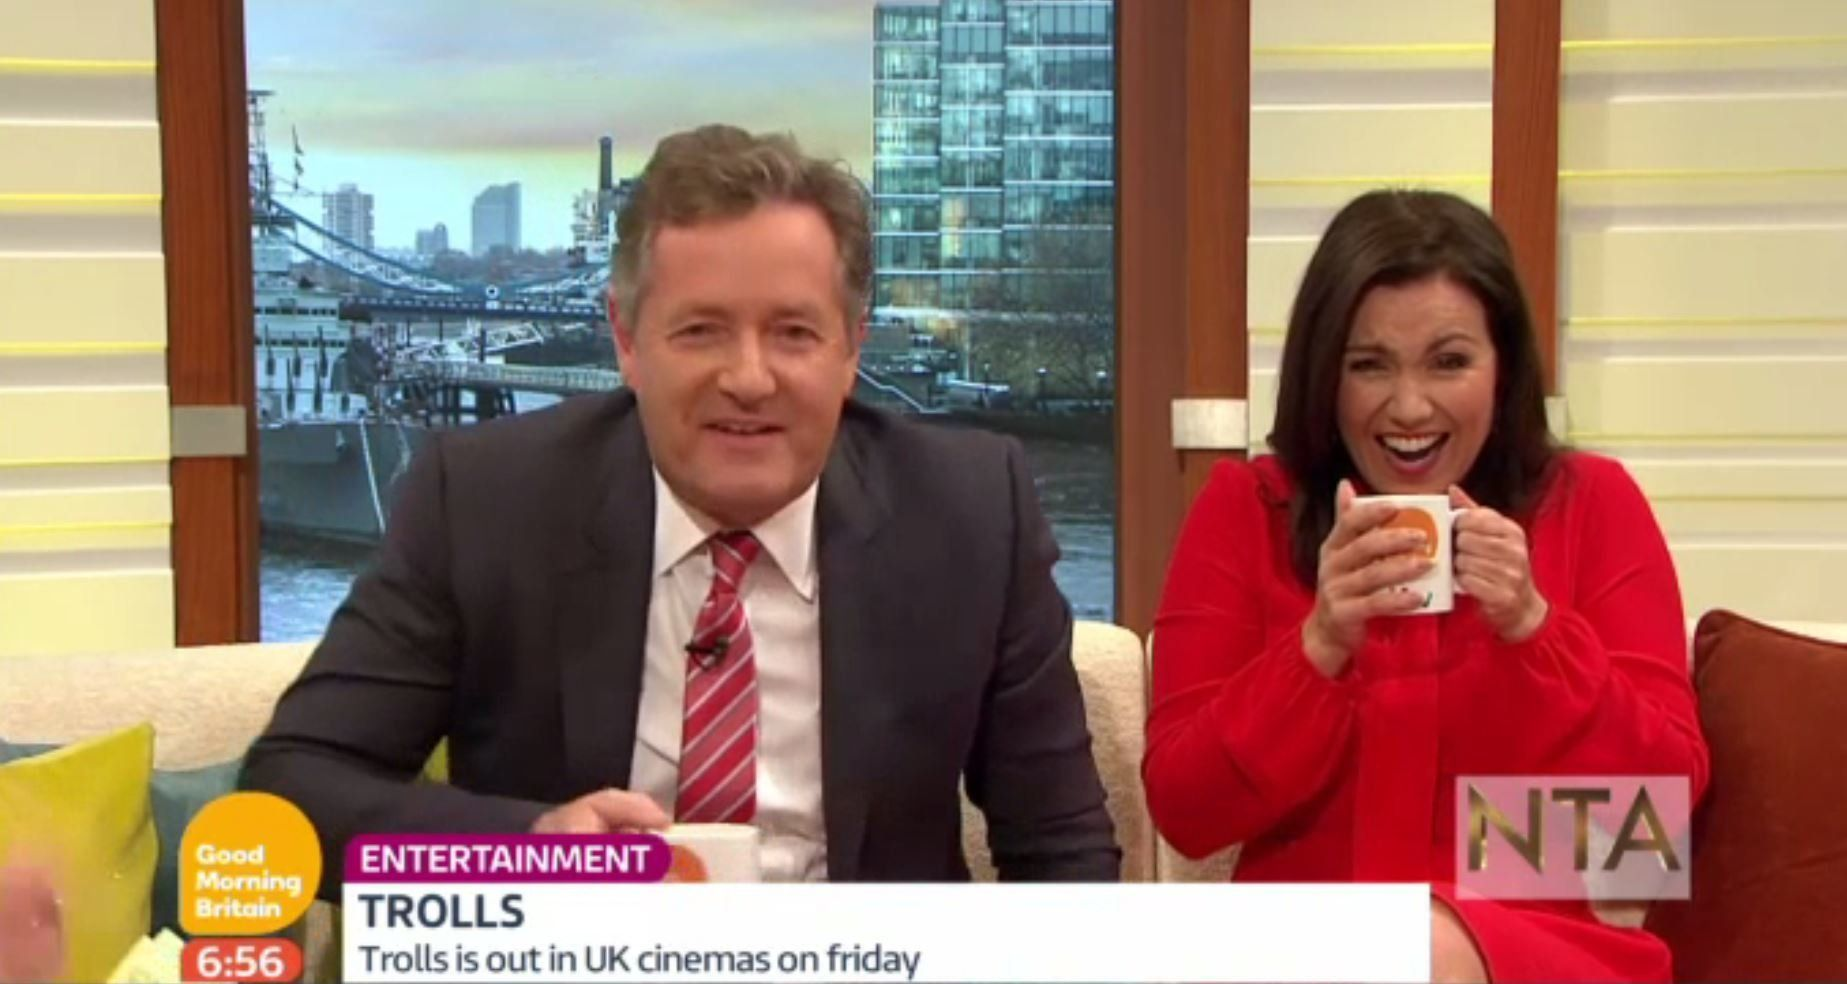 Susanna Reid Can't Believe Her Luck As Justin Timberlake Calls Her 'Super